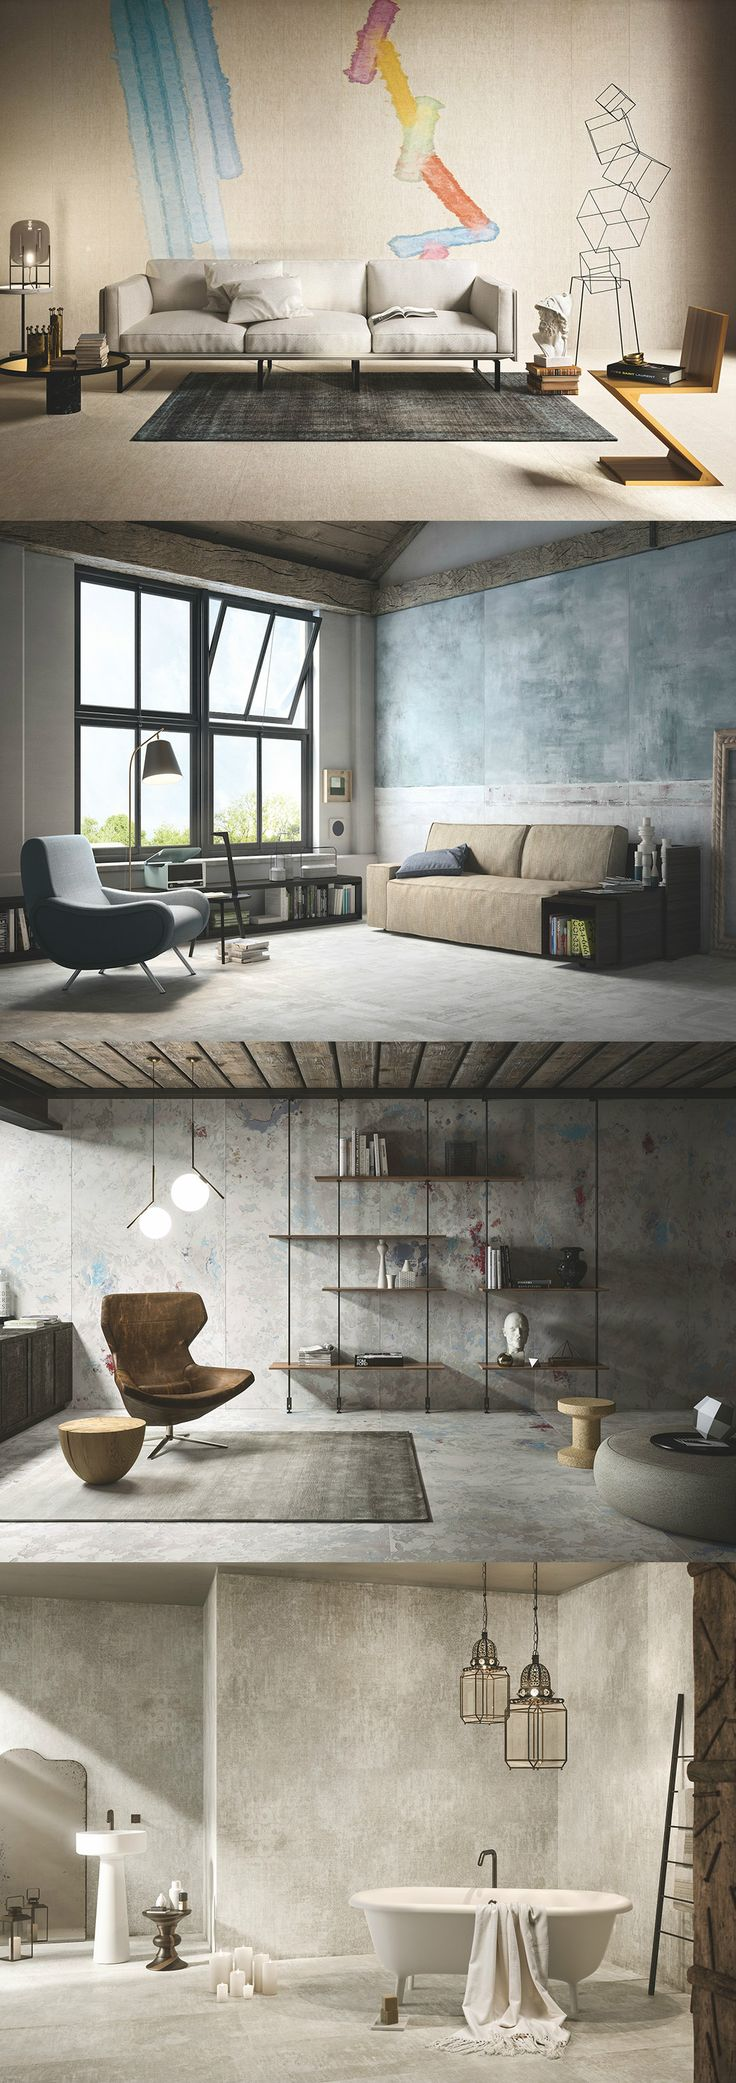 alberto manual design by pinterest enderica on reddit modernas reference casas pin interior behr